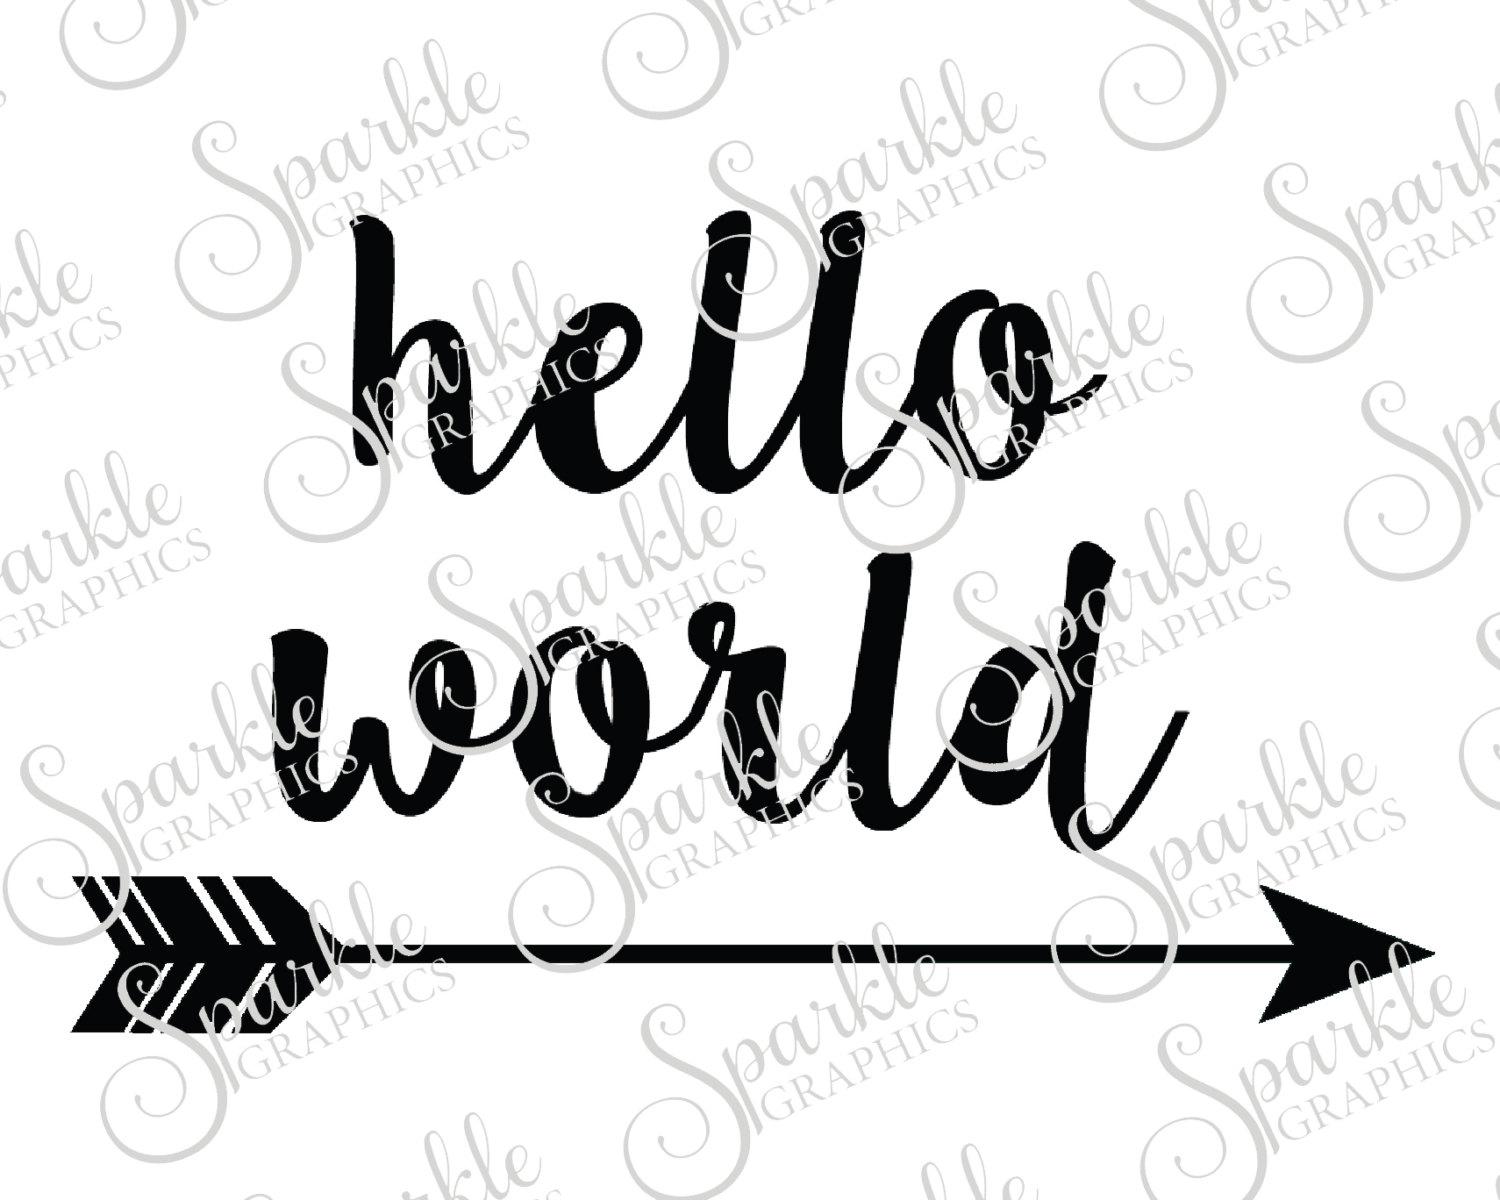 kids around the world silhouette clipart black and white